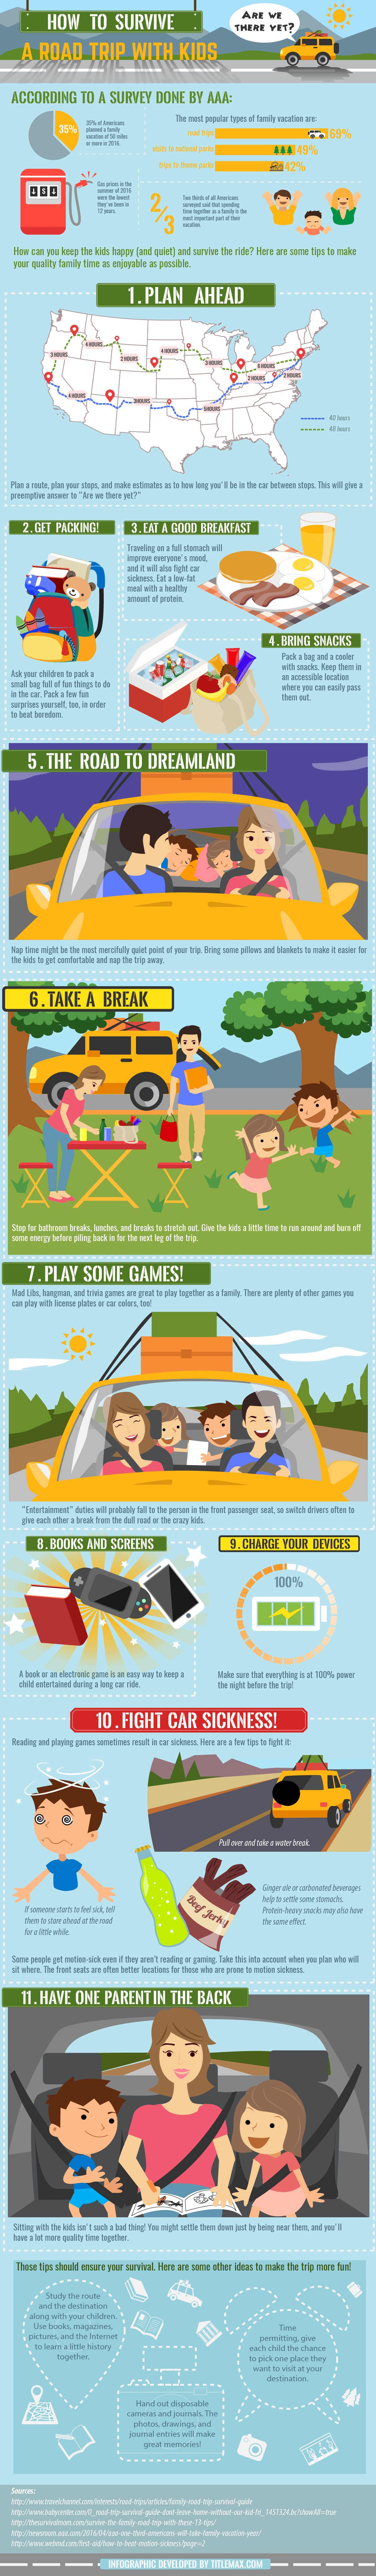 How to Survive Long Road Trips With Kids